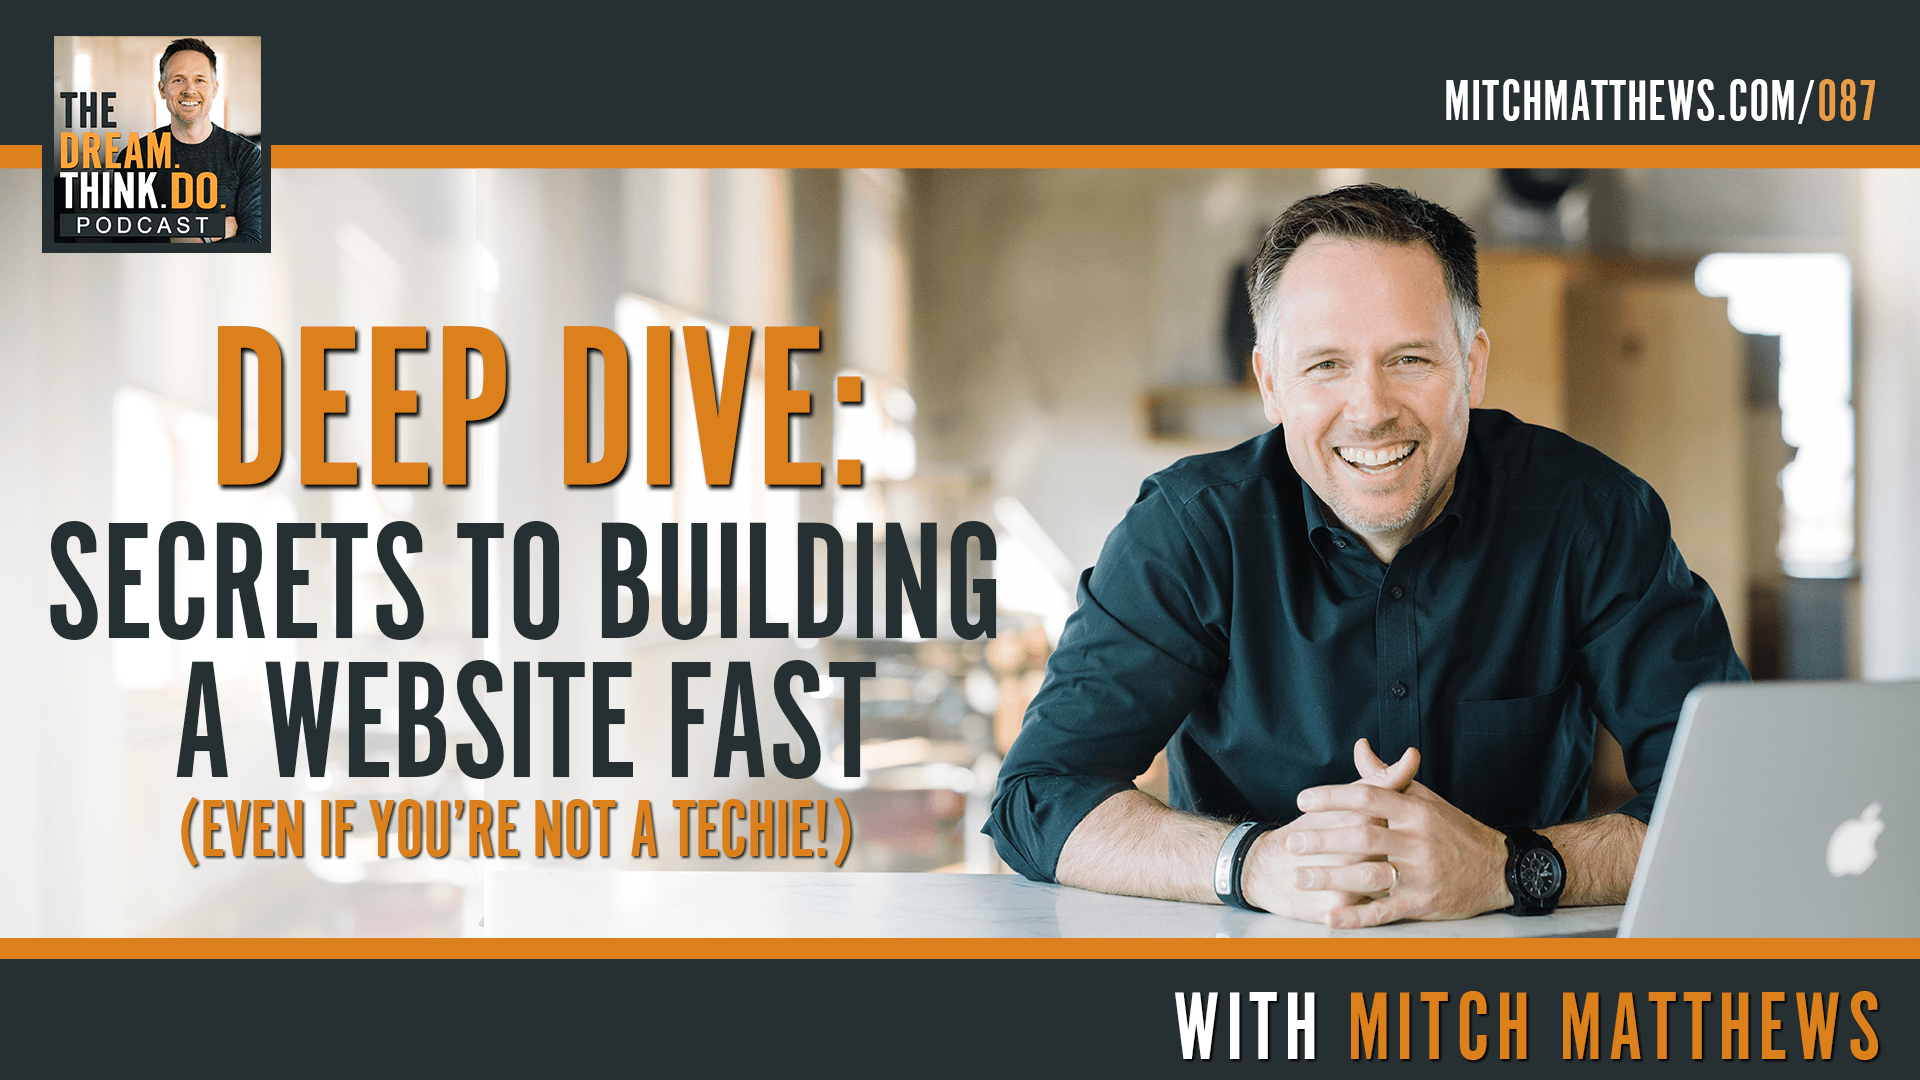 DEEP DIVE: Secrets to building a website fast (even if you're not a techie!)